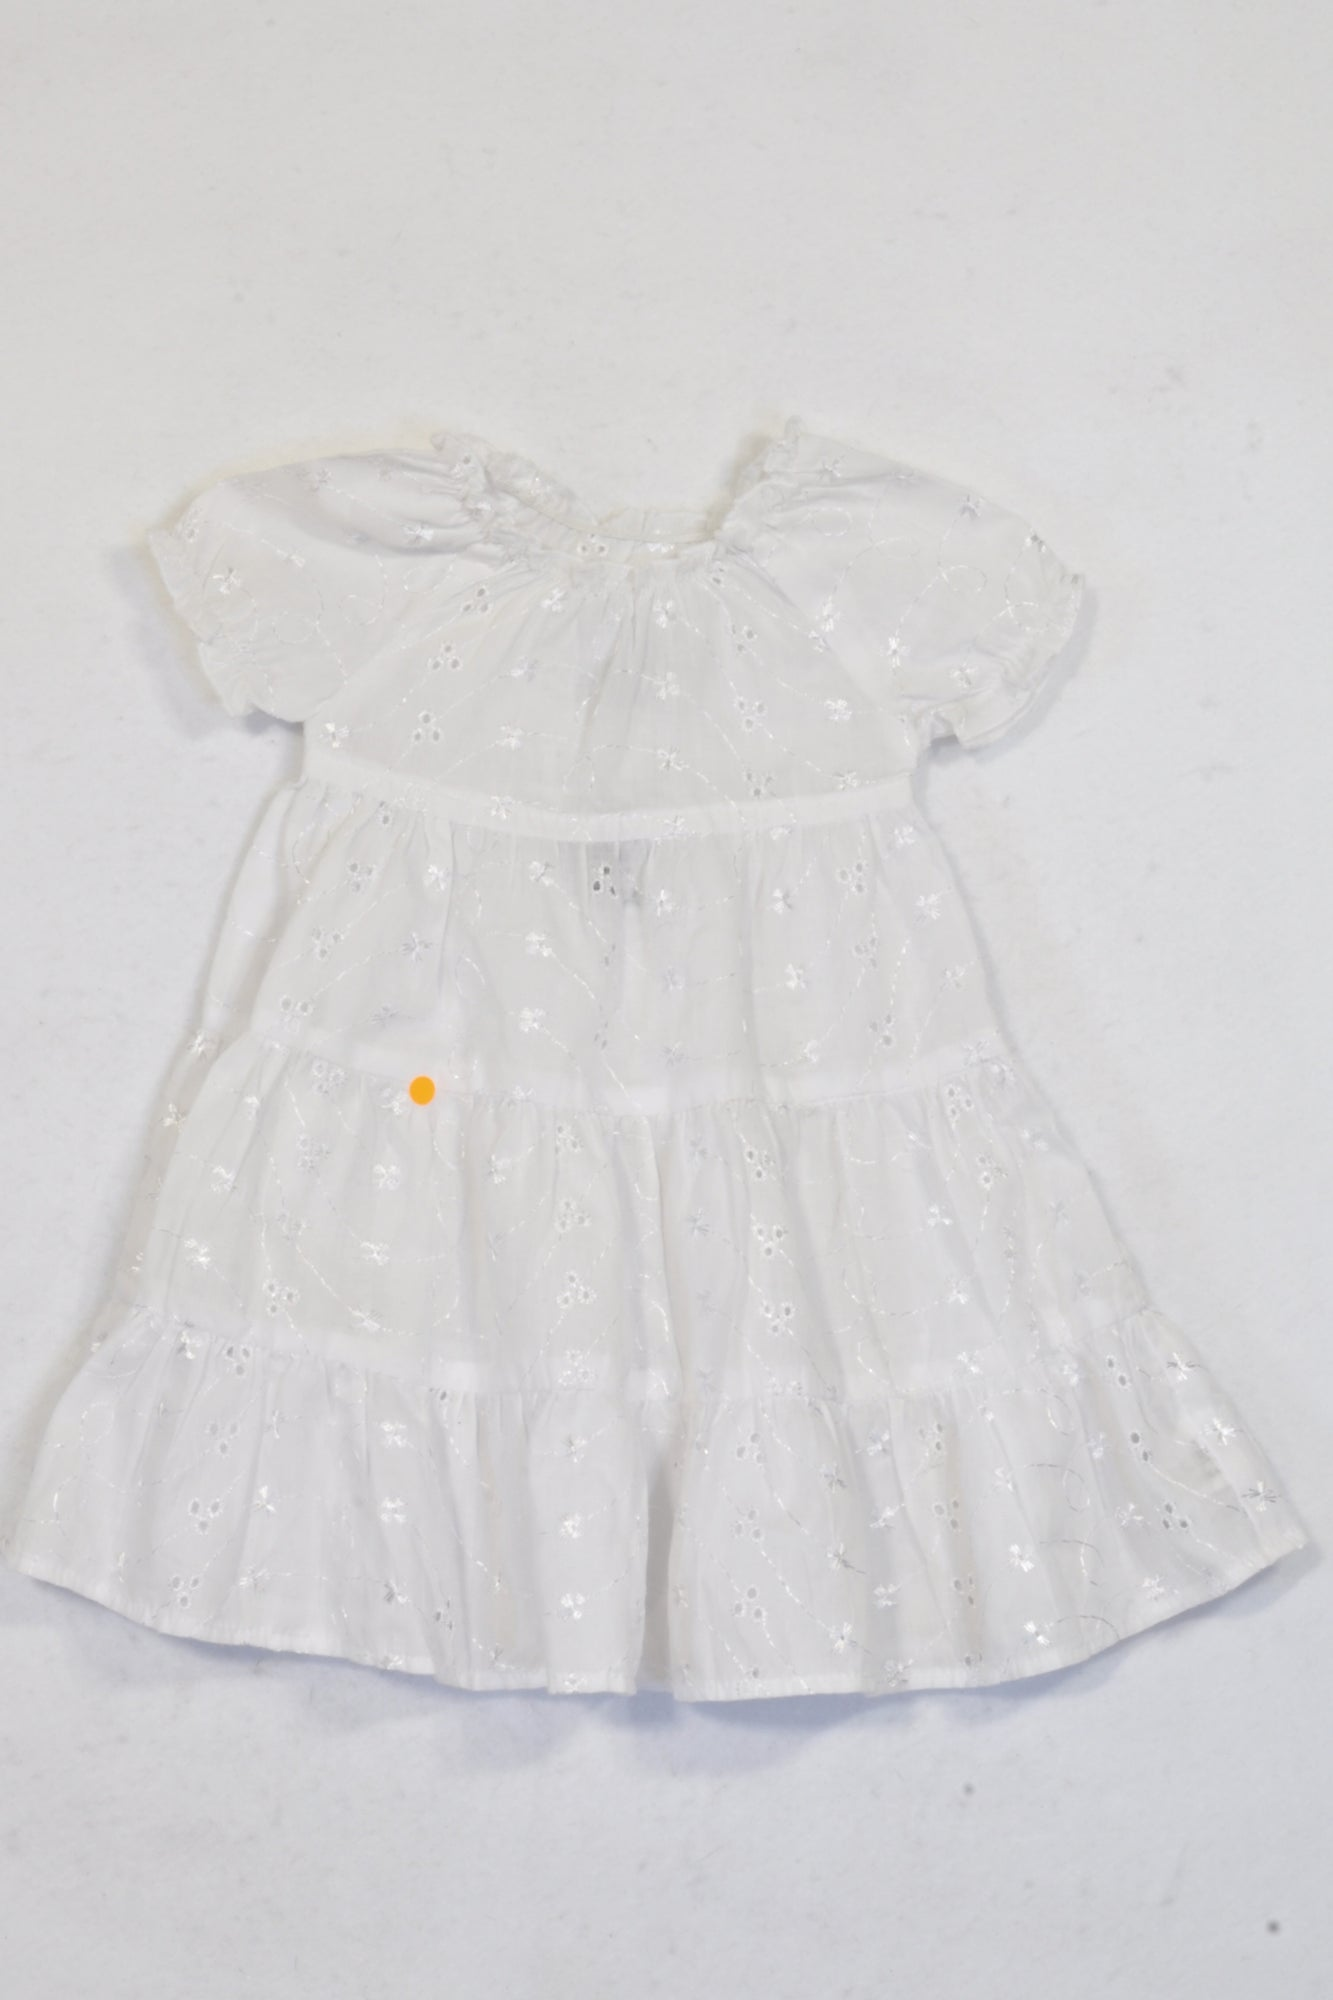 Keedo White Eyelet Dress Girls 0-3 months